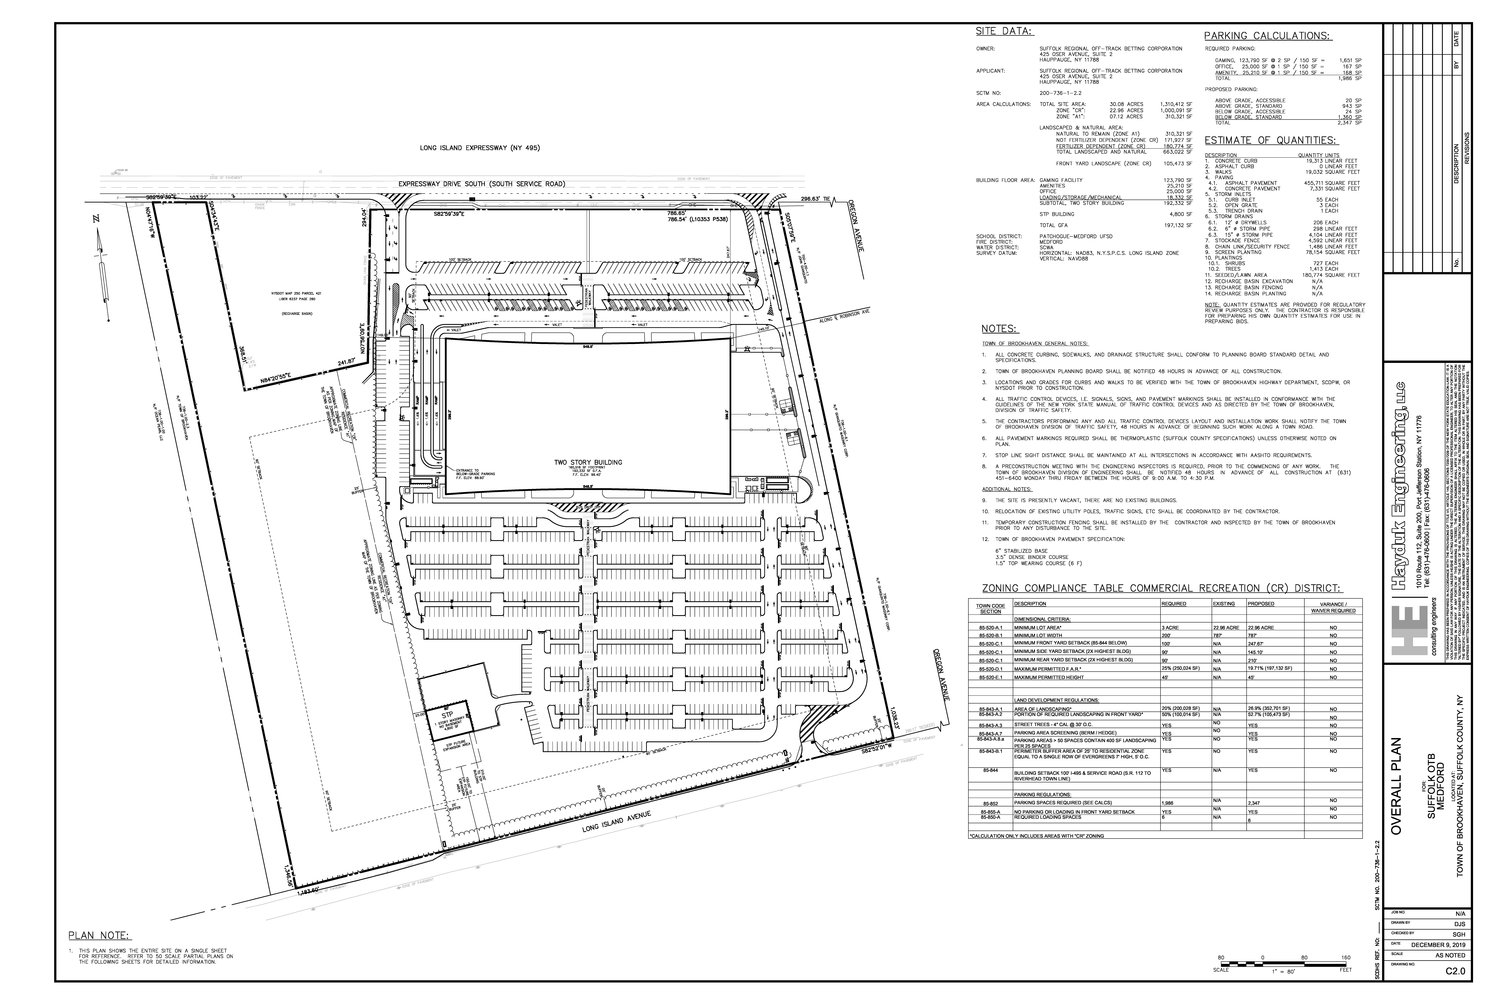 A preliminary site plan of Suffolk OTB's plans for a Medford casino was revealed in December. No formal site plan has been submitted to Brookhaven Town. This is the only page received by the civic ahead of the meeting.